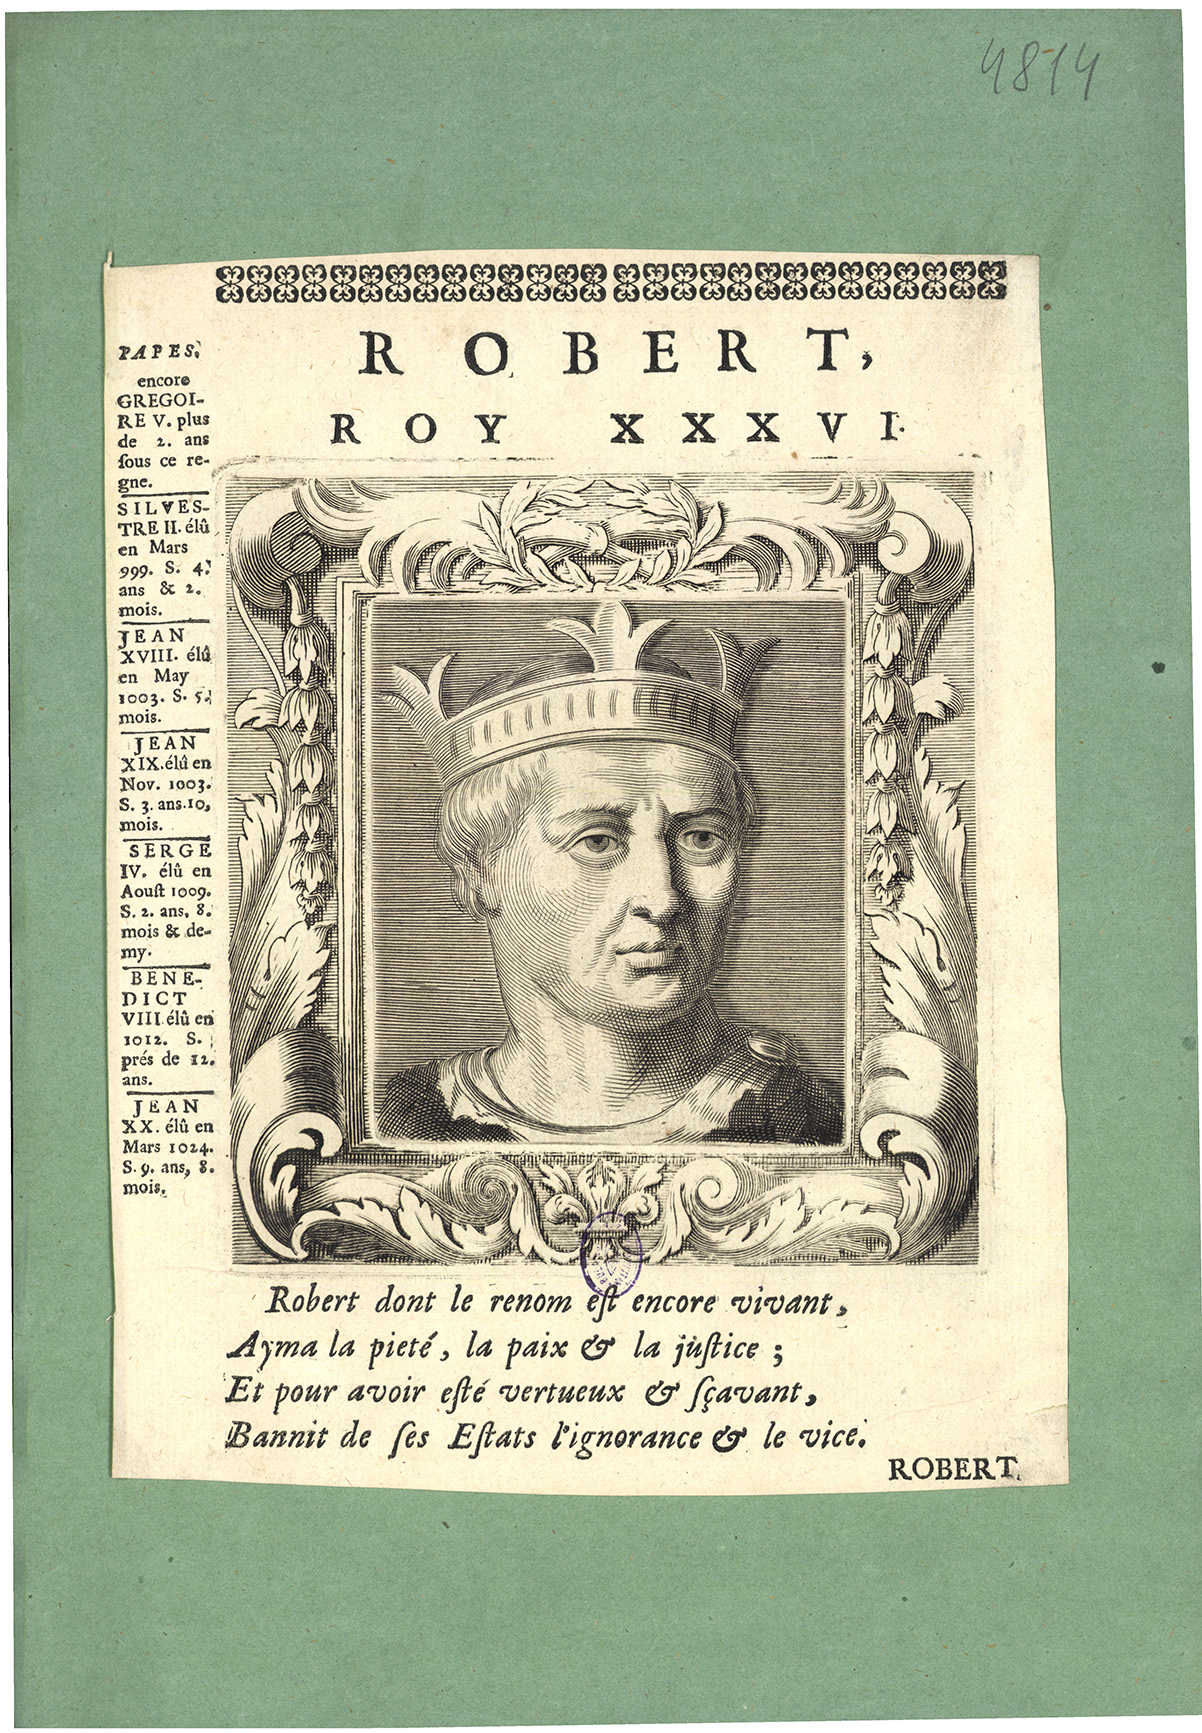 Robert, roy XXXVI.